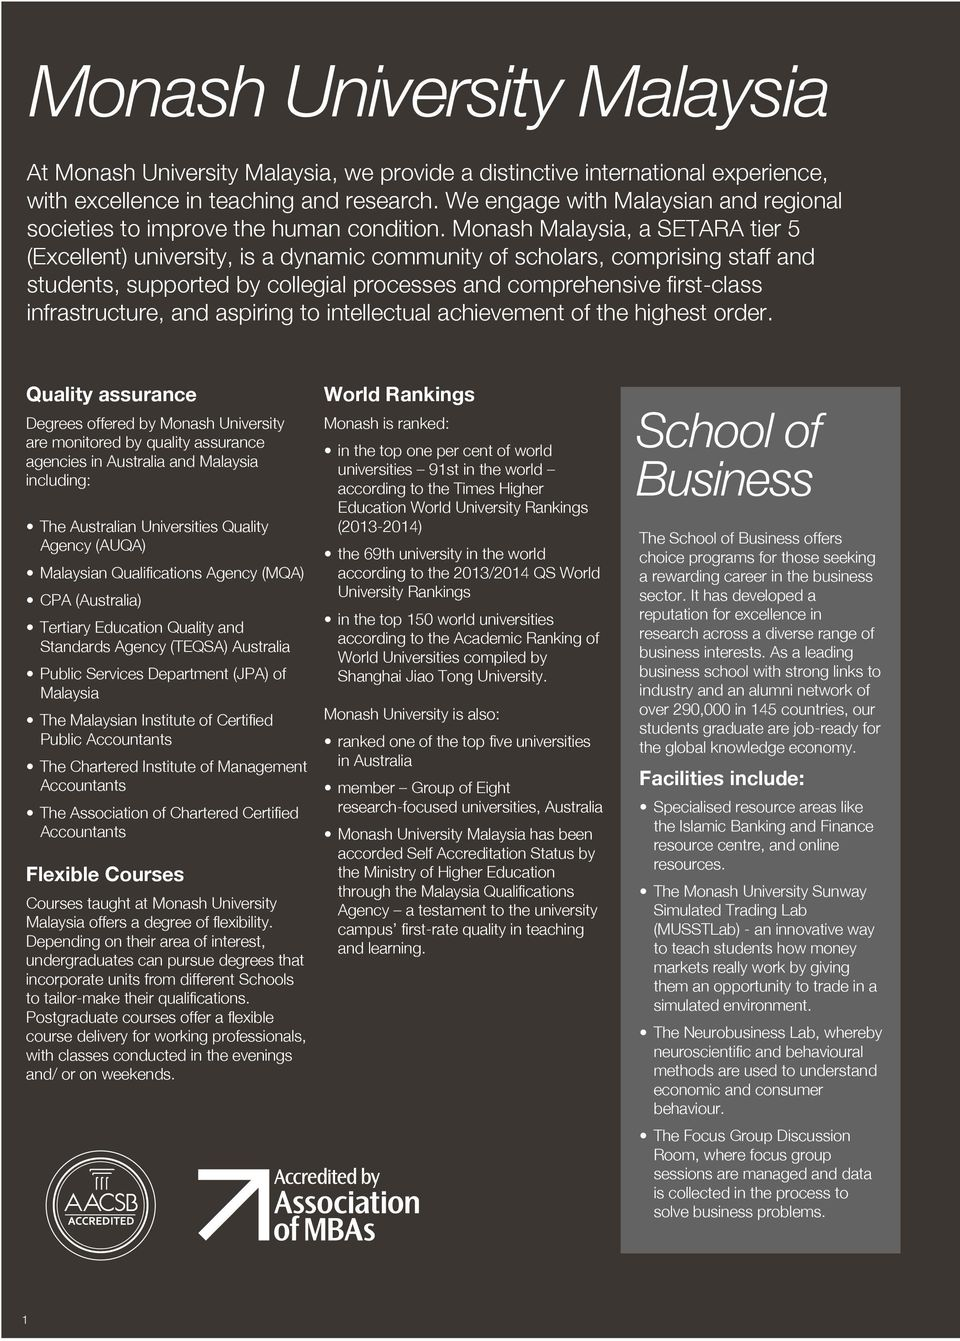 Monash Malaysia, a SETARA tier 5 (Excellent) university, is a dynamic community of scholars, comprising staff and students, supported by collegial processes and comprehensive first-class